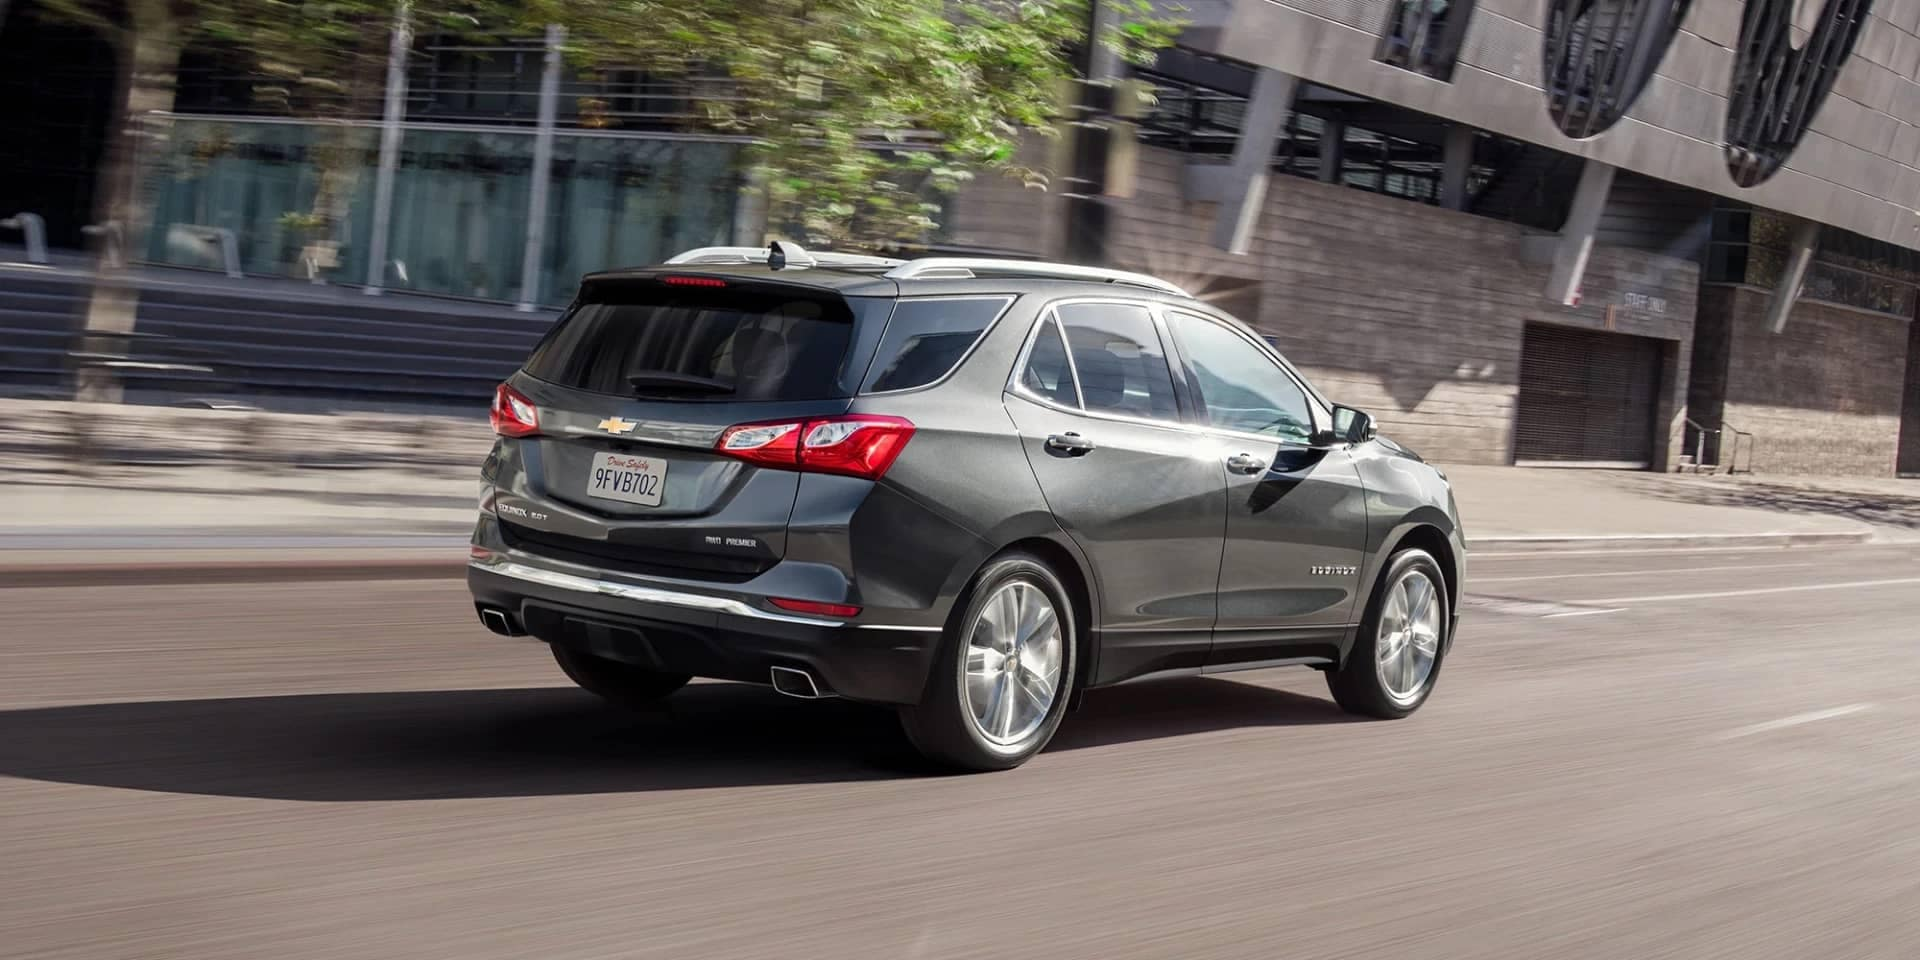 2020 Chevy Equinox on the Road